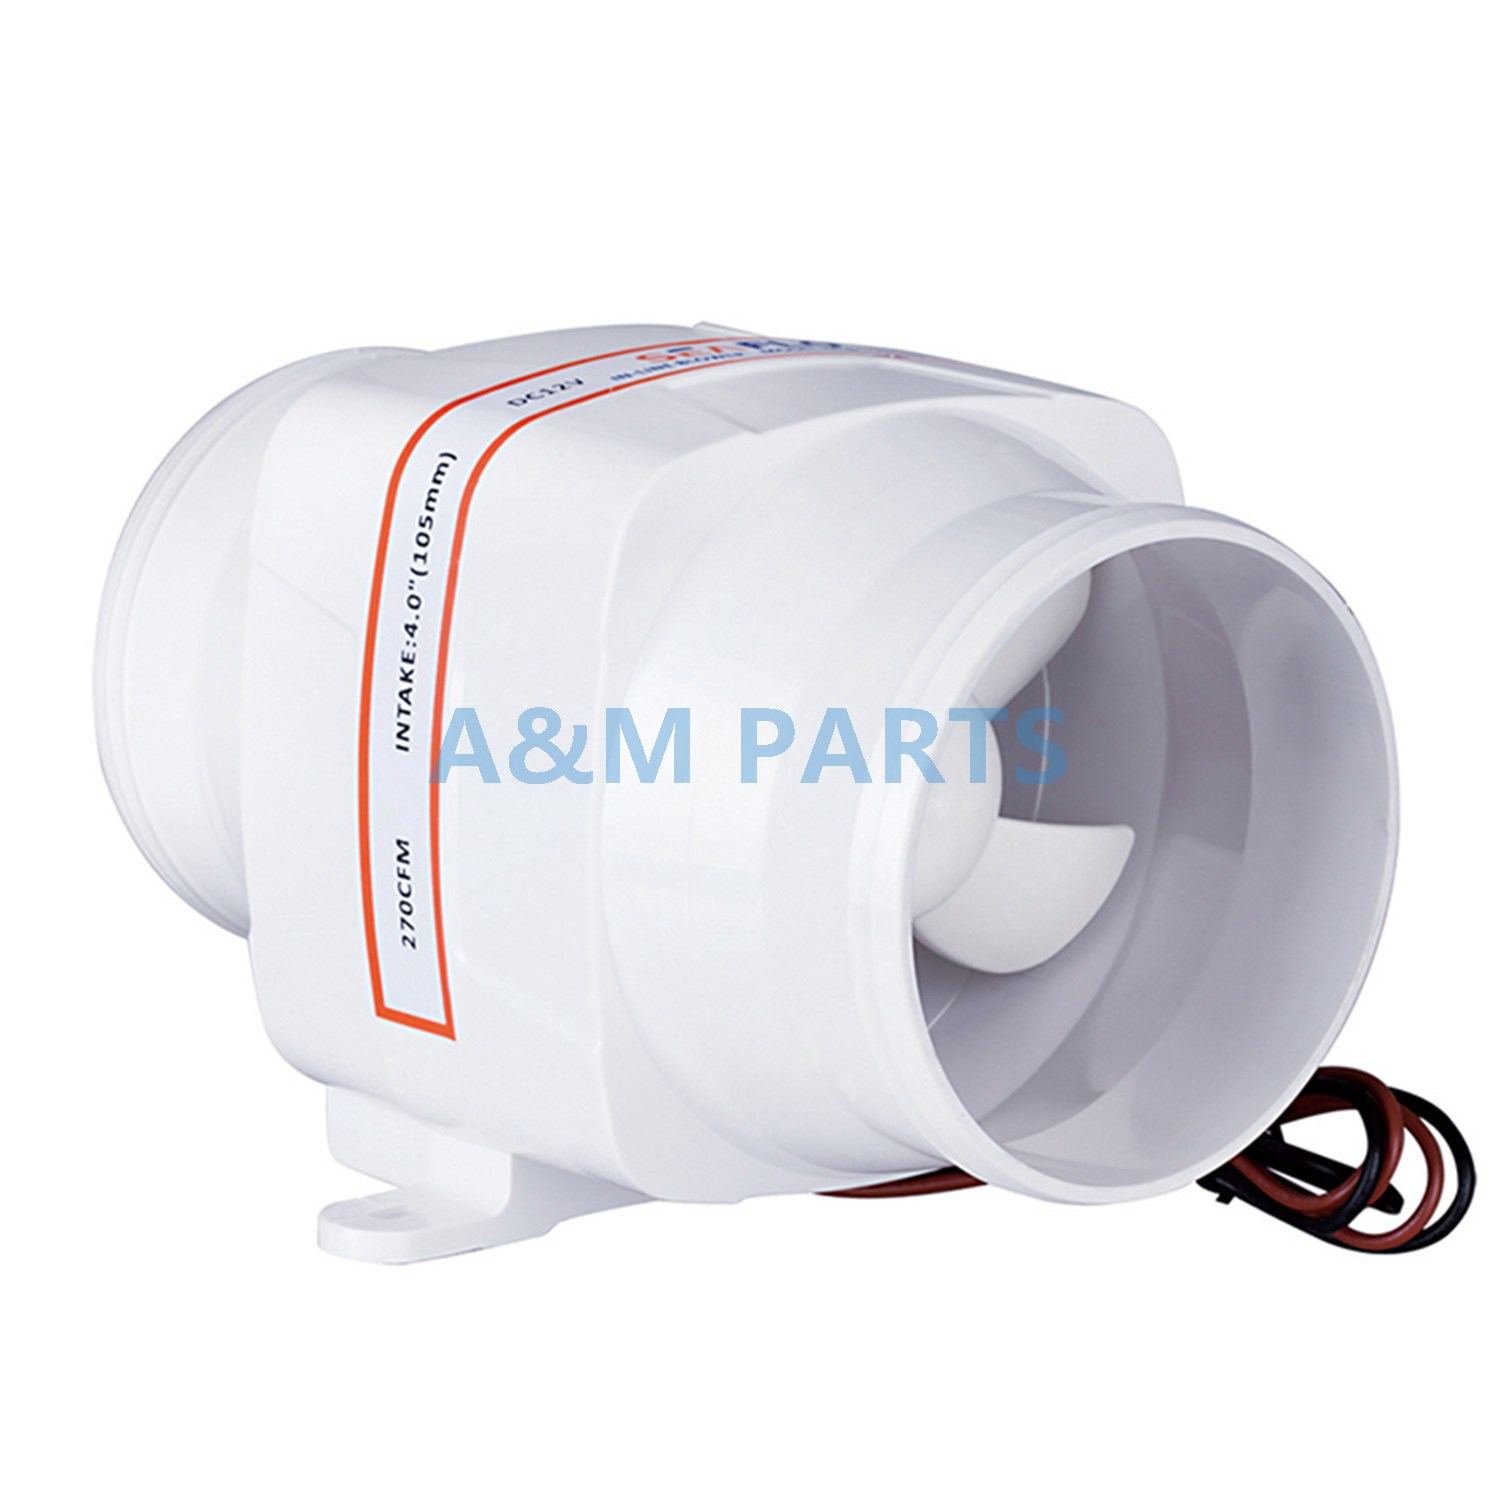 Boat Inline Bilge Blower Fan 12V 270 CFM Marine Galley Engine VentilationBoat Inline Bilge Blower Fan 12V 270 CFM Marine Galley Engine Ventilation